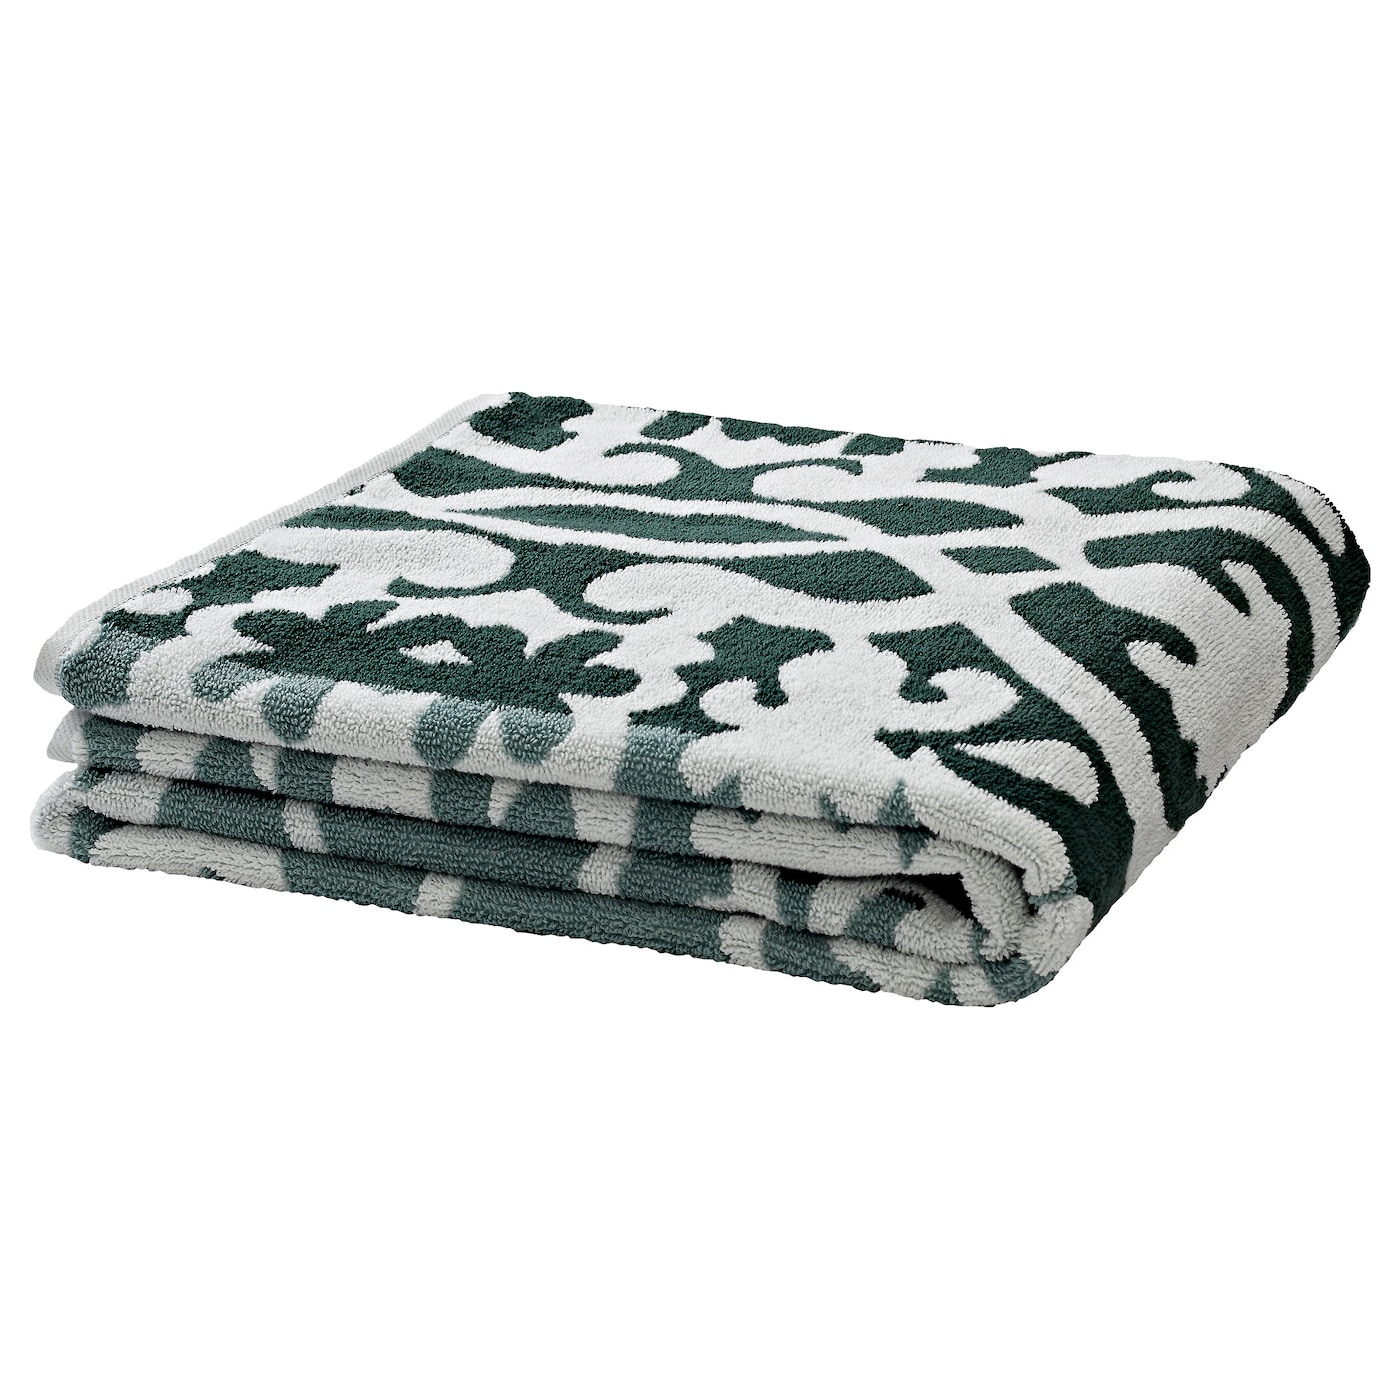 IKEA BLÄDJAN bath towel The long, fine fibres of combed cotton create a soft and durable towel.